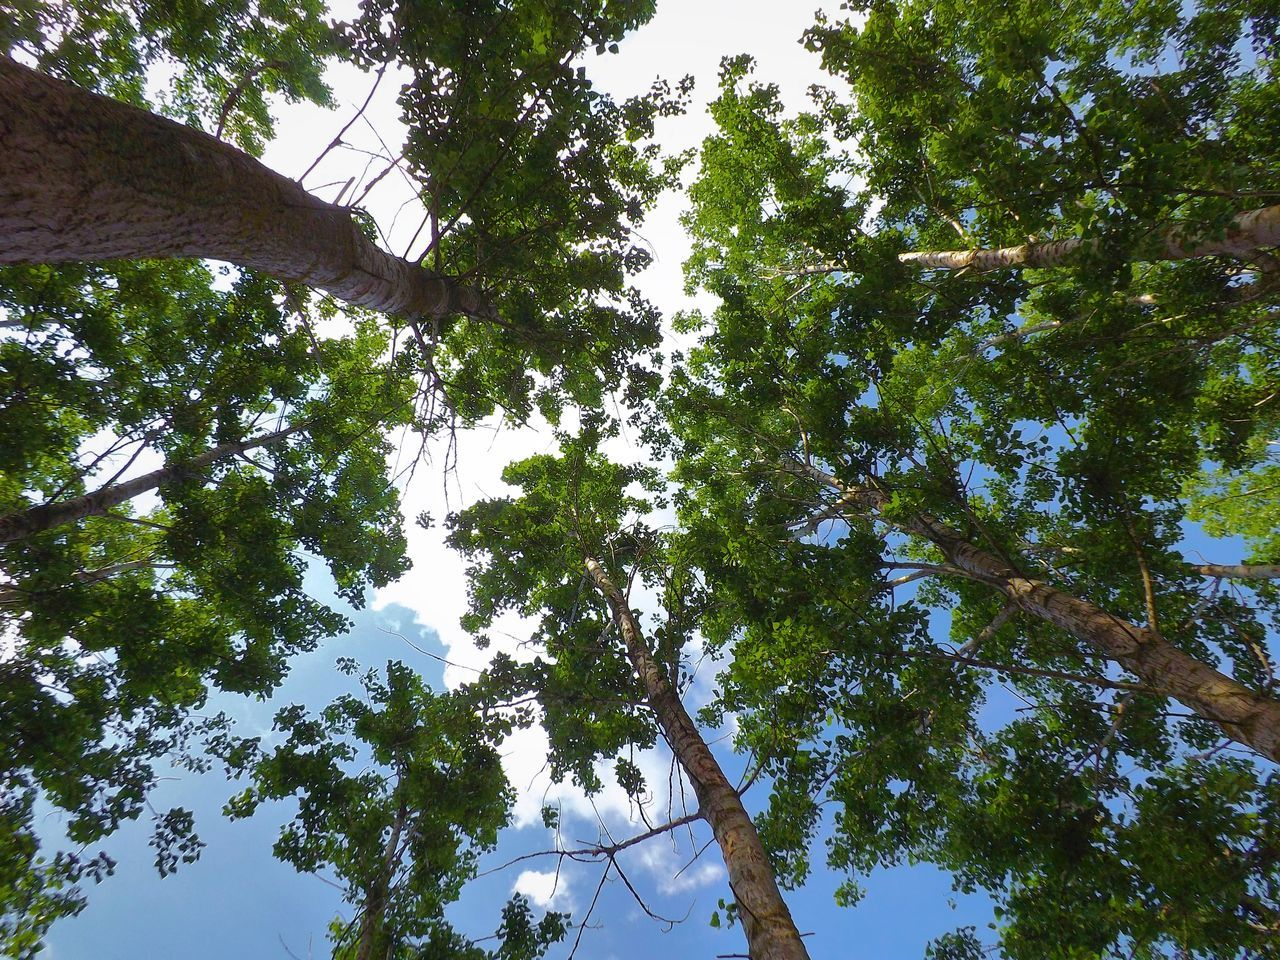 Calm Cloud From Down Below From My Point Of View Green Leafes Nature Outdoors Park Sky Tisza Trees Up